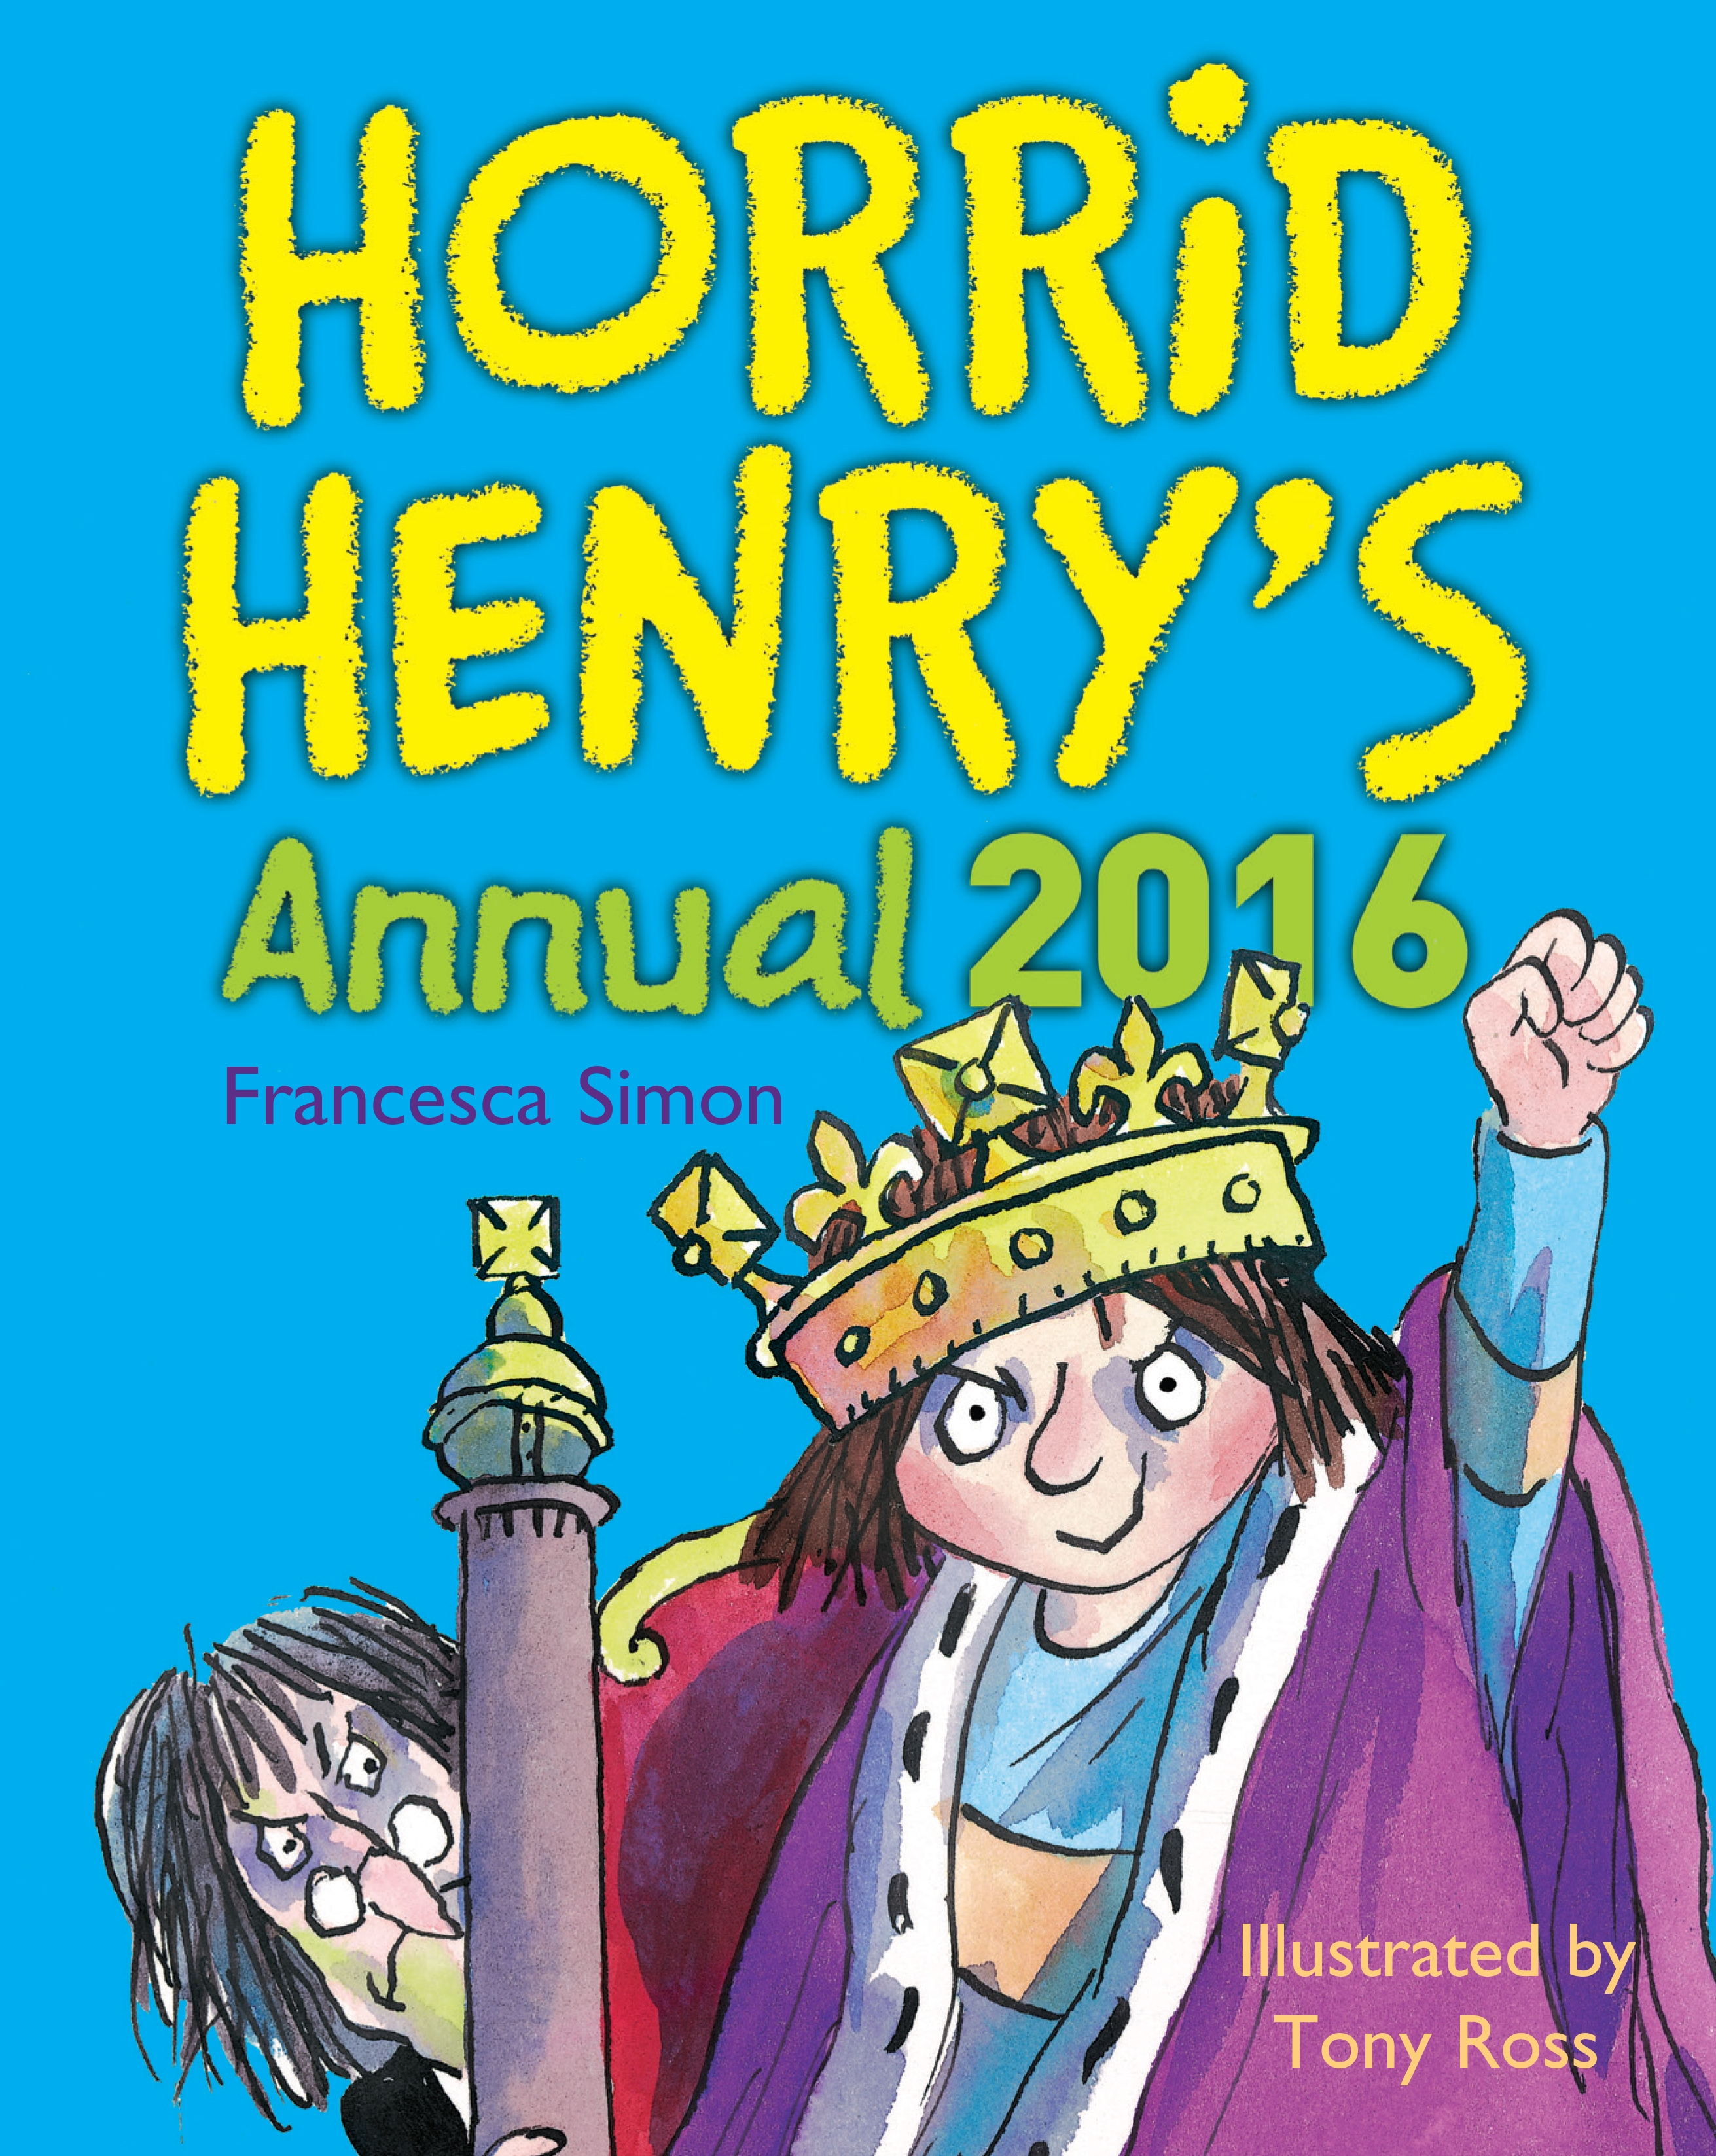 Horrid Henry's Annual 2016